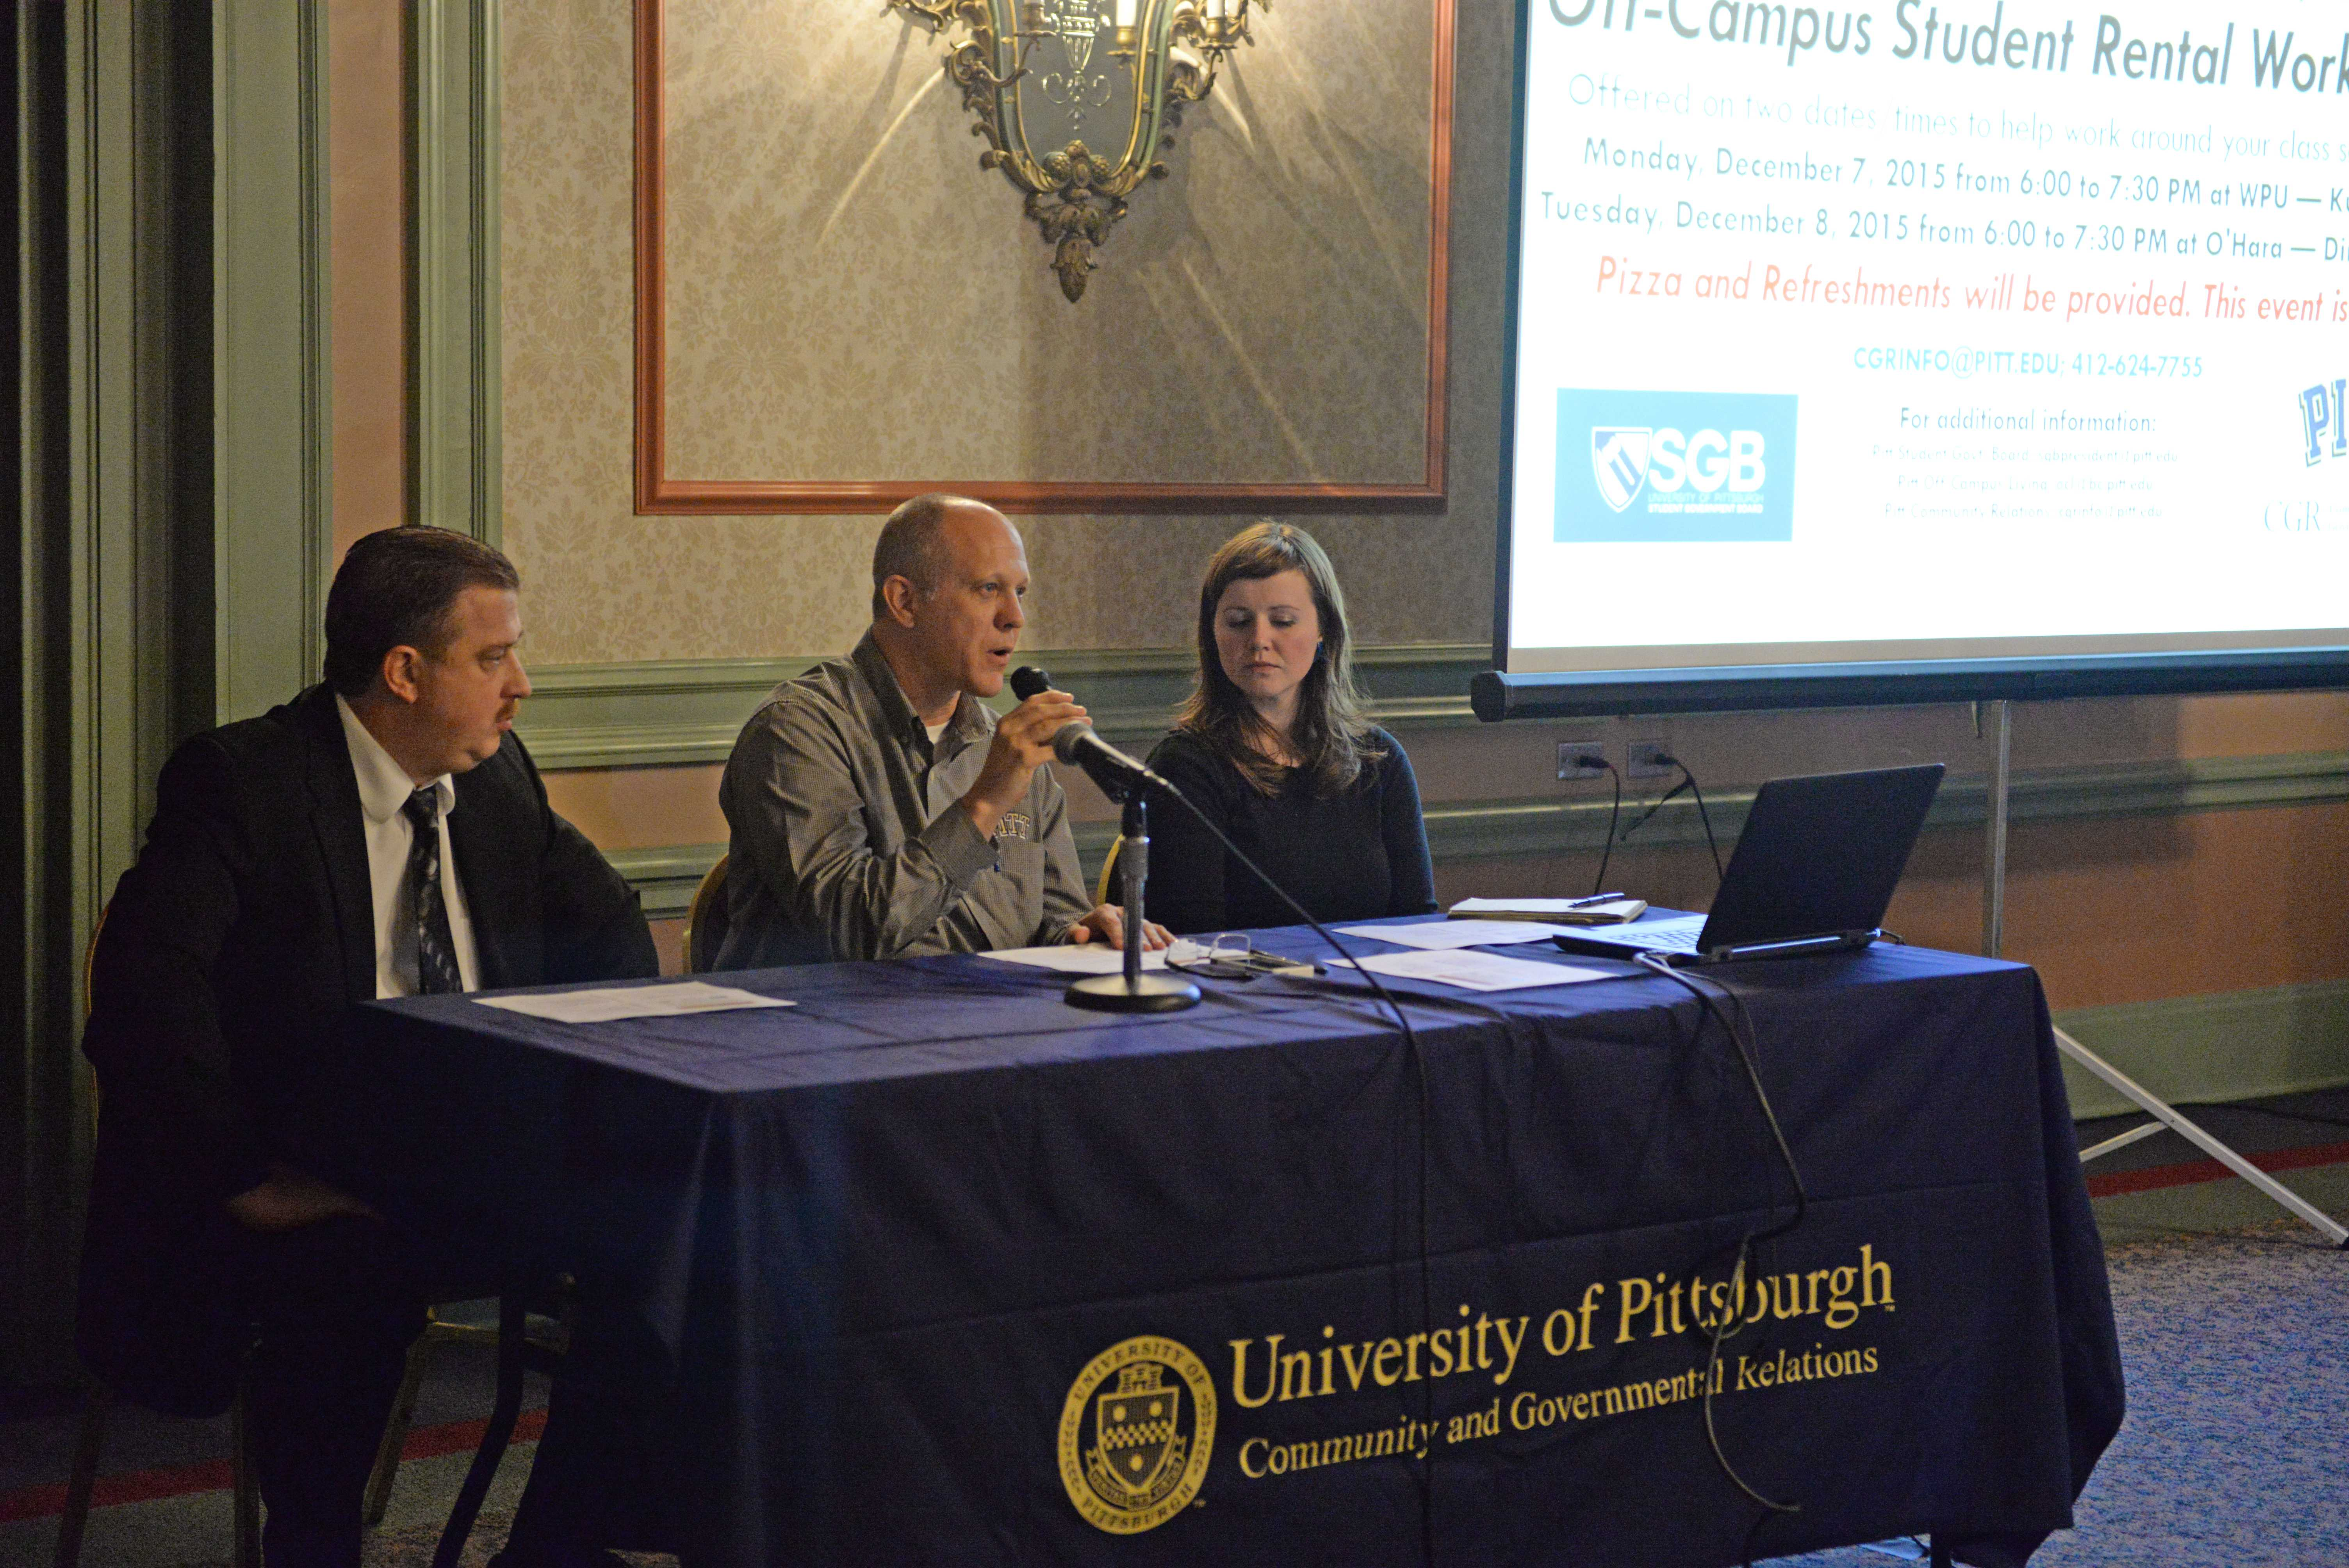 The University of Pittsburgh Community and Governmental Relations hosted an off-campus student rental workshop on Monday night.  Abigail Self | Staff Photographer